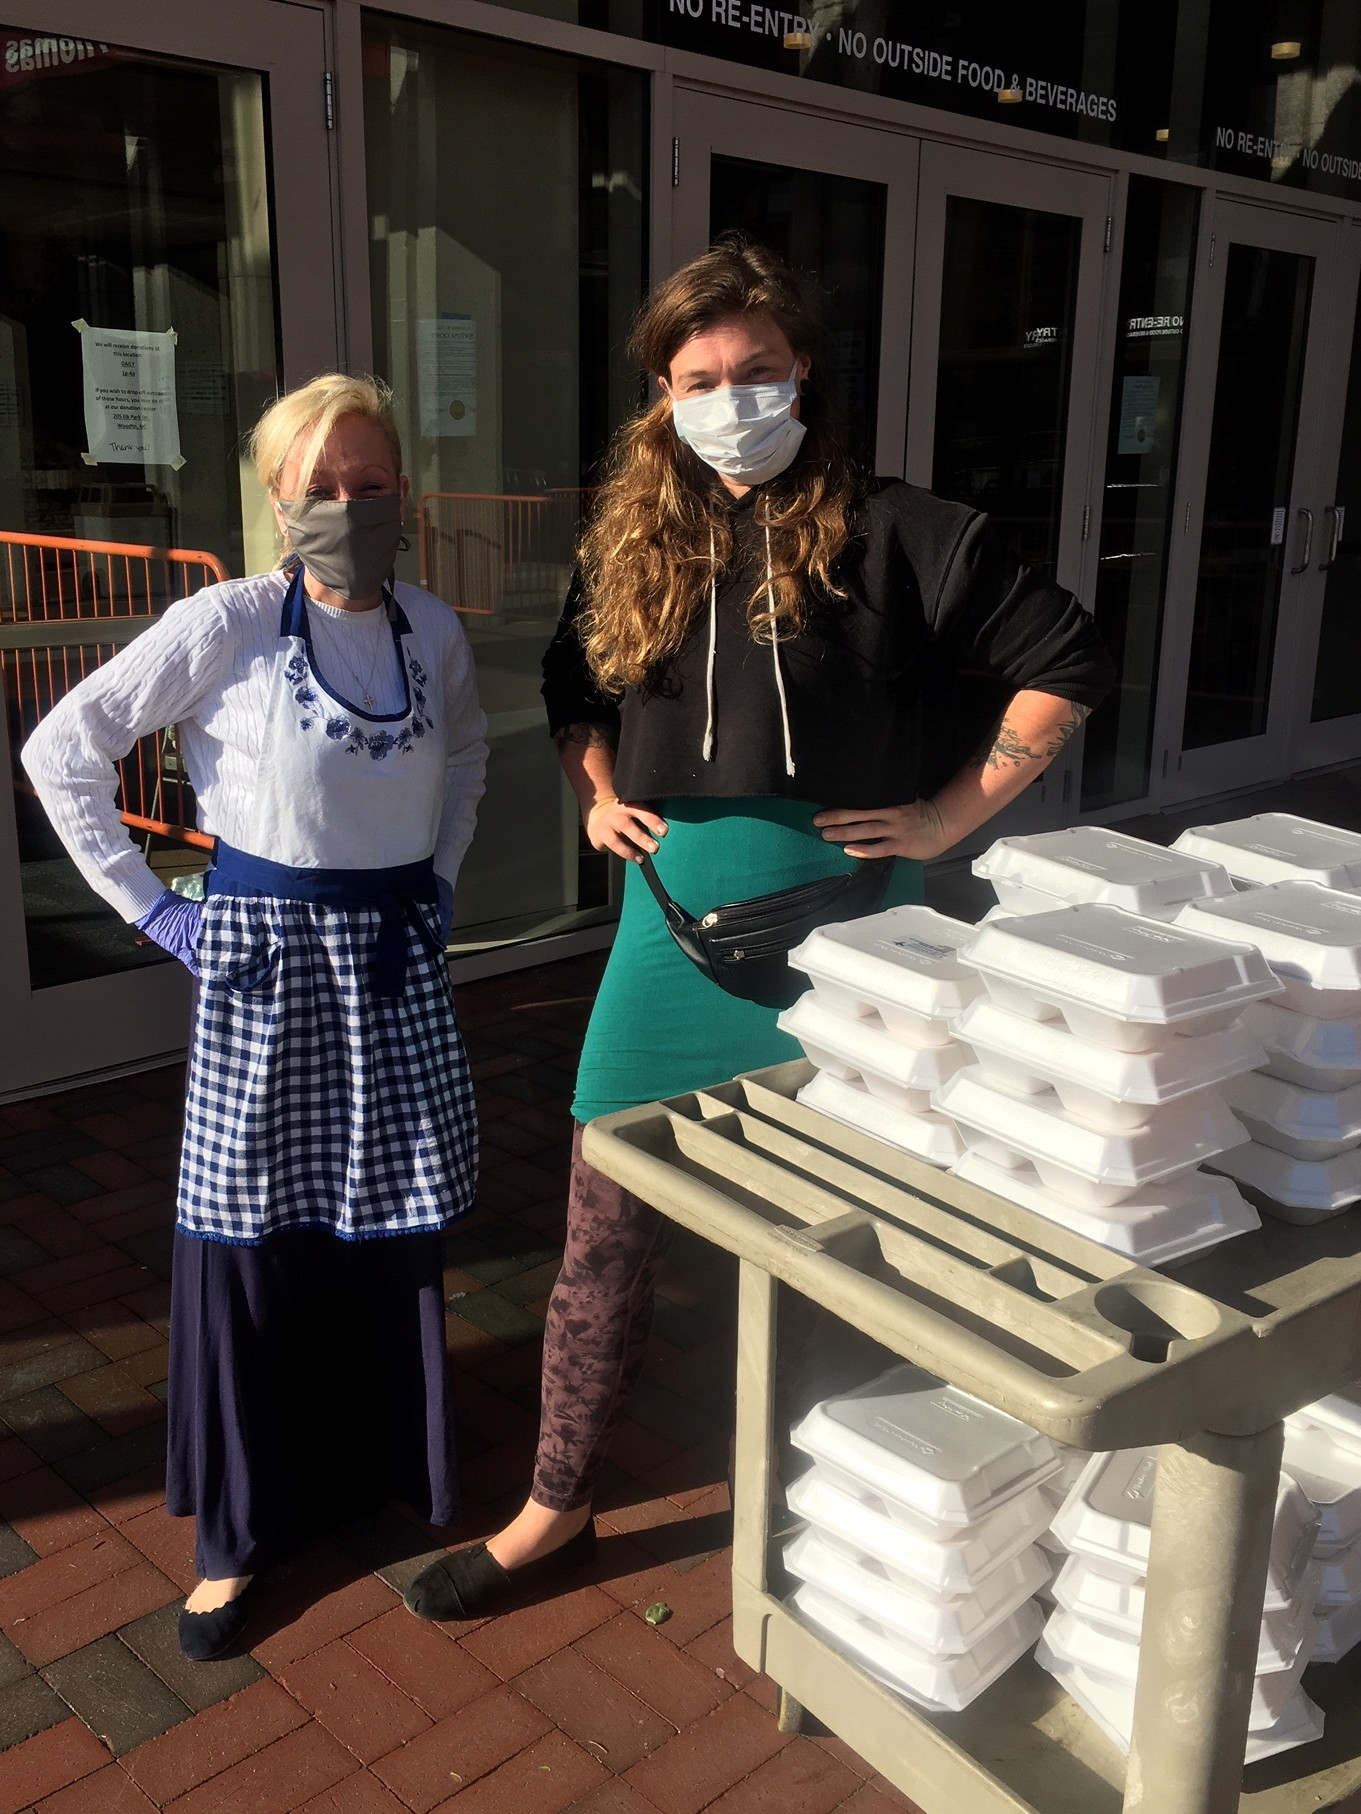 two people will cart full of meal for homeless in Asheville